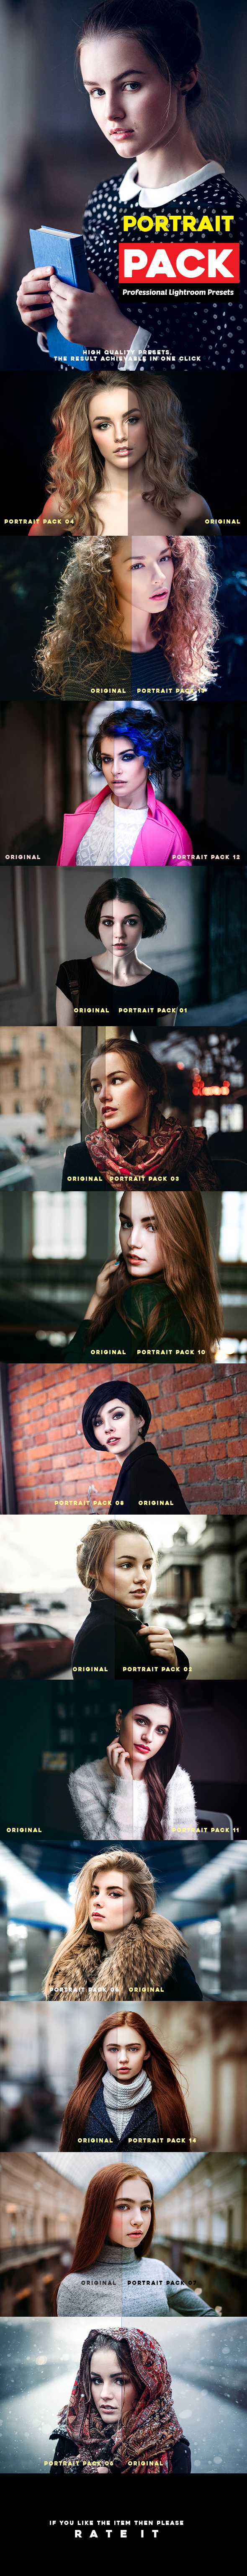 Portrait Pack 14 Professional Lightroom Presets - Portrait Lightroom Presets